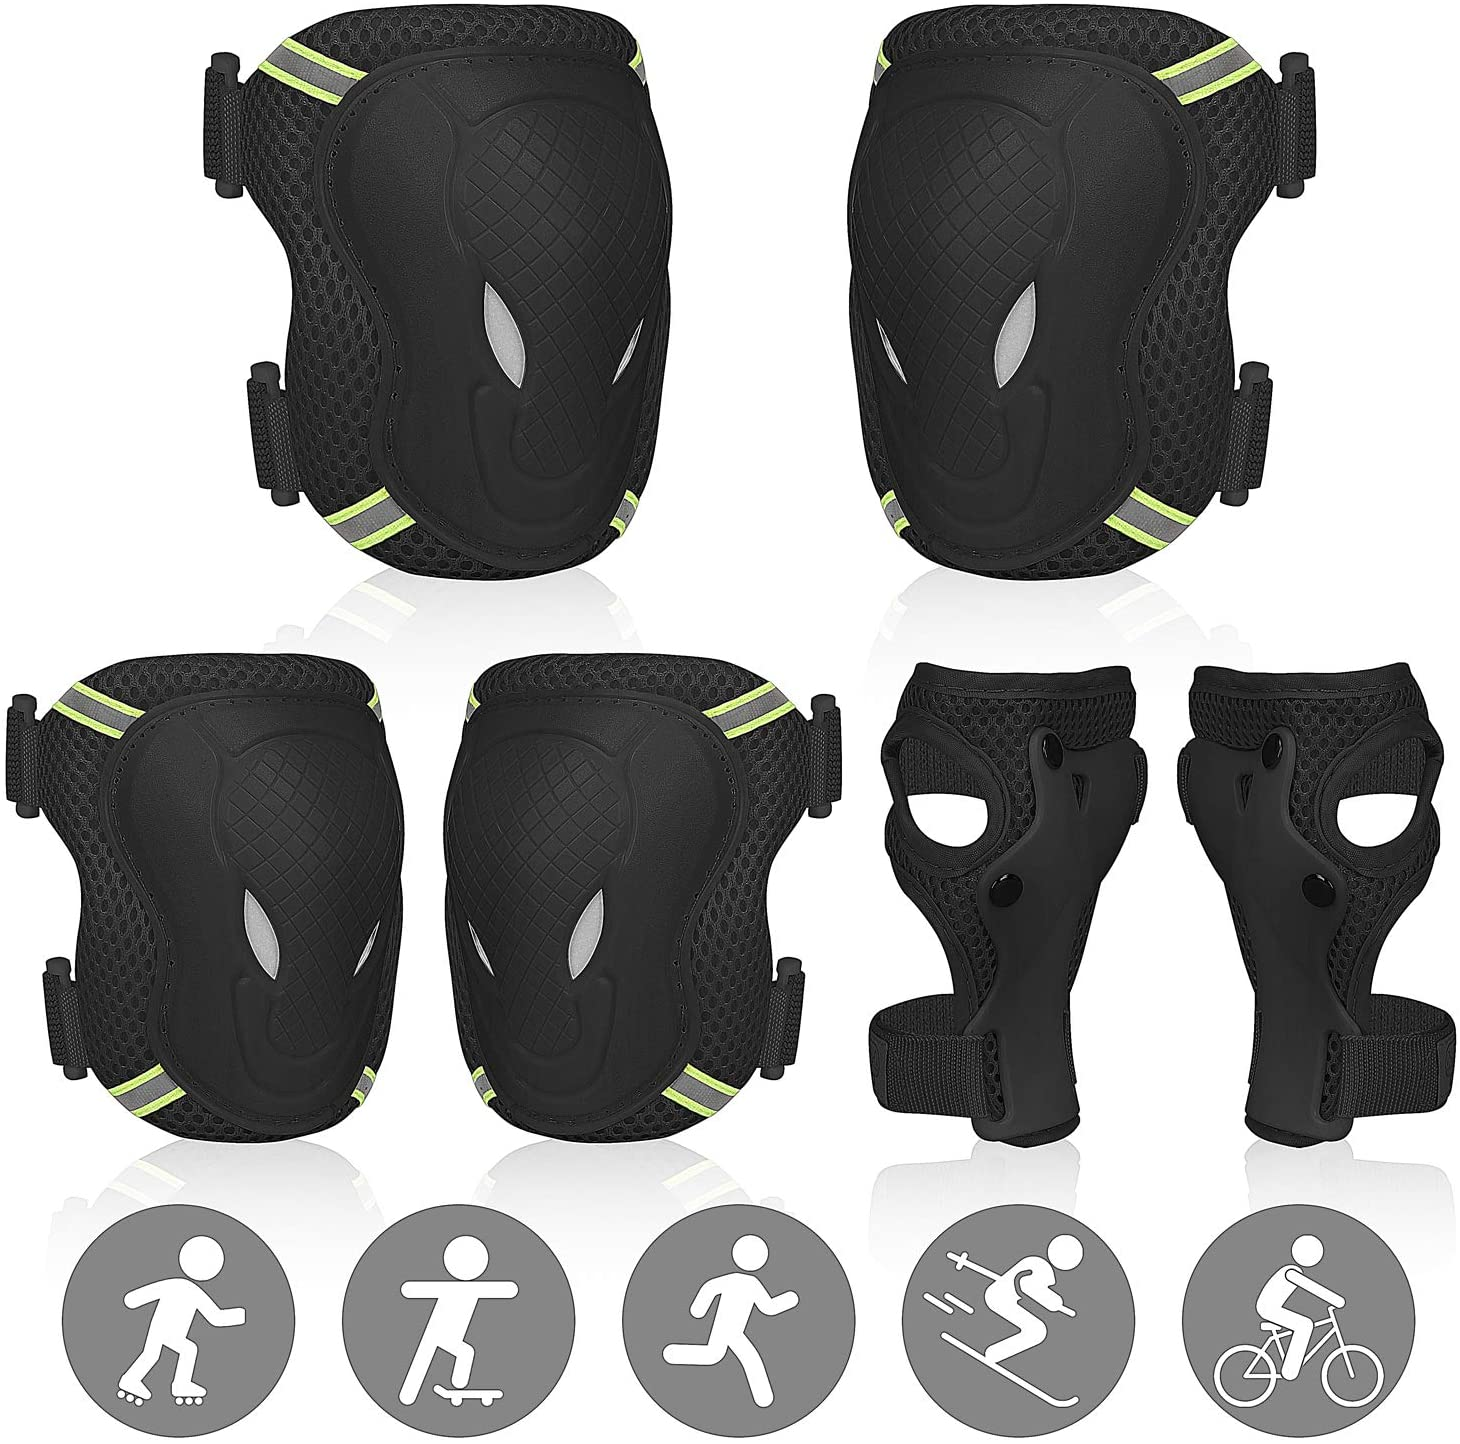 SEEHONOR Protective Gear Set for Kids/Youth, Adjustable Reflective Safety Knee Pads Elbow Pad and Wrist Guards for Boys Girls Ages 3-8 Rollerblading Skateboard Cycling Skating Bike Scooter